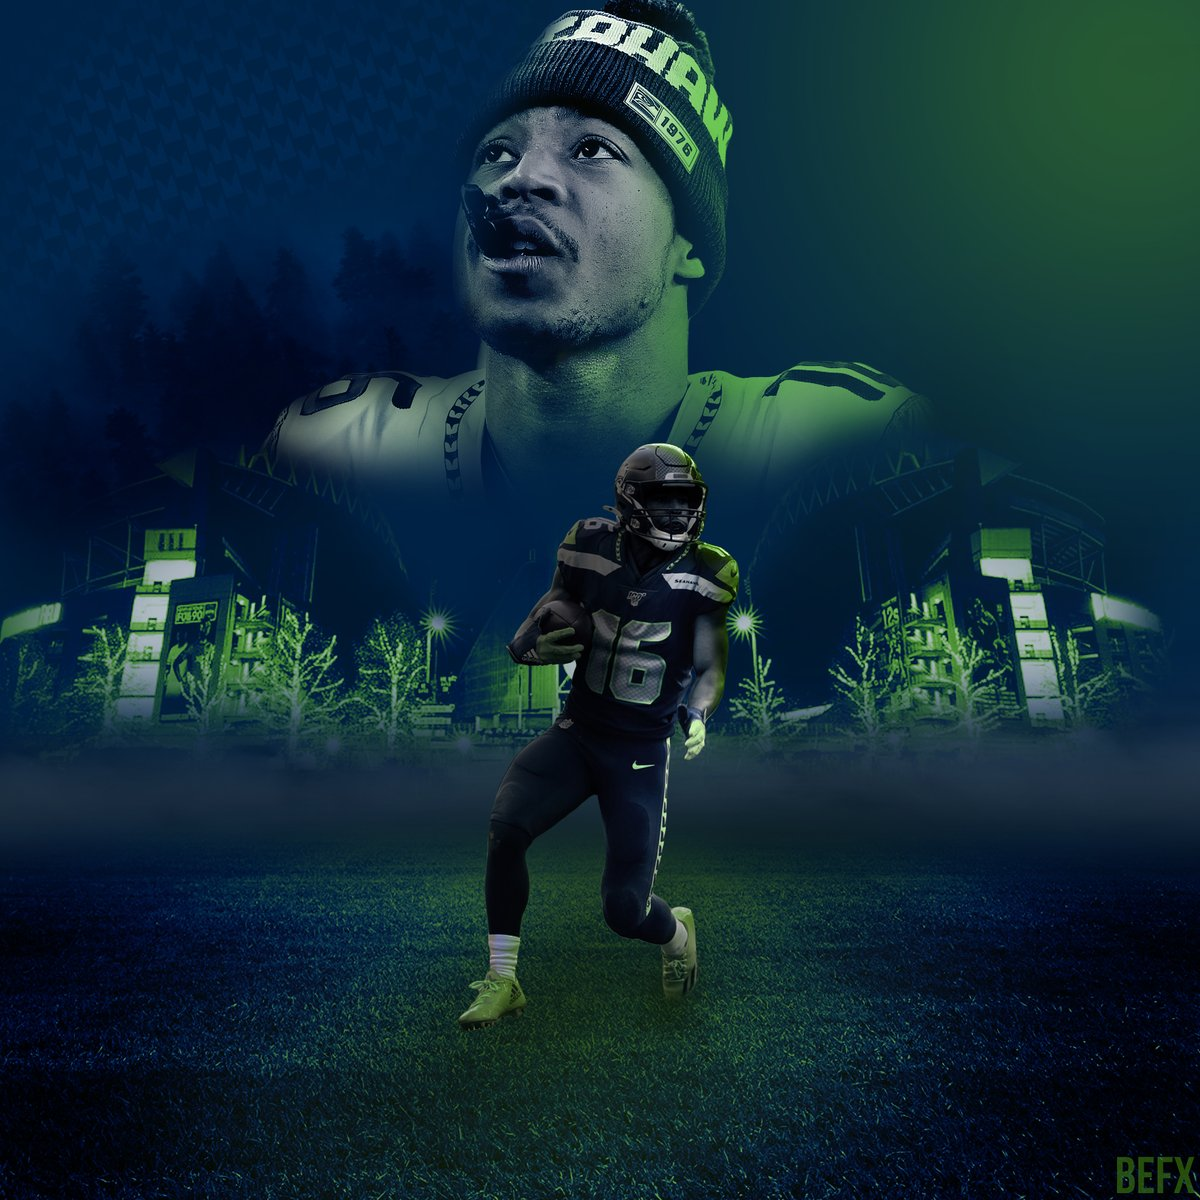 Tyler Lockett Design Likes and RTs appreciated